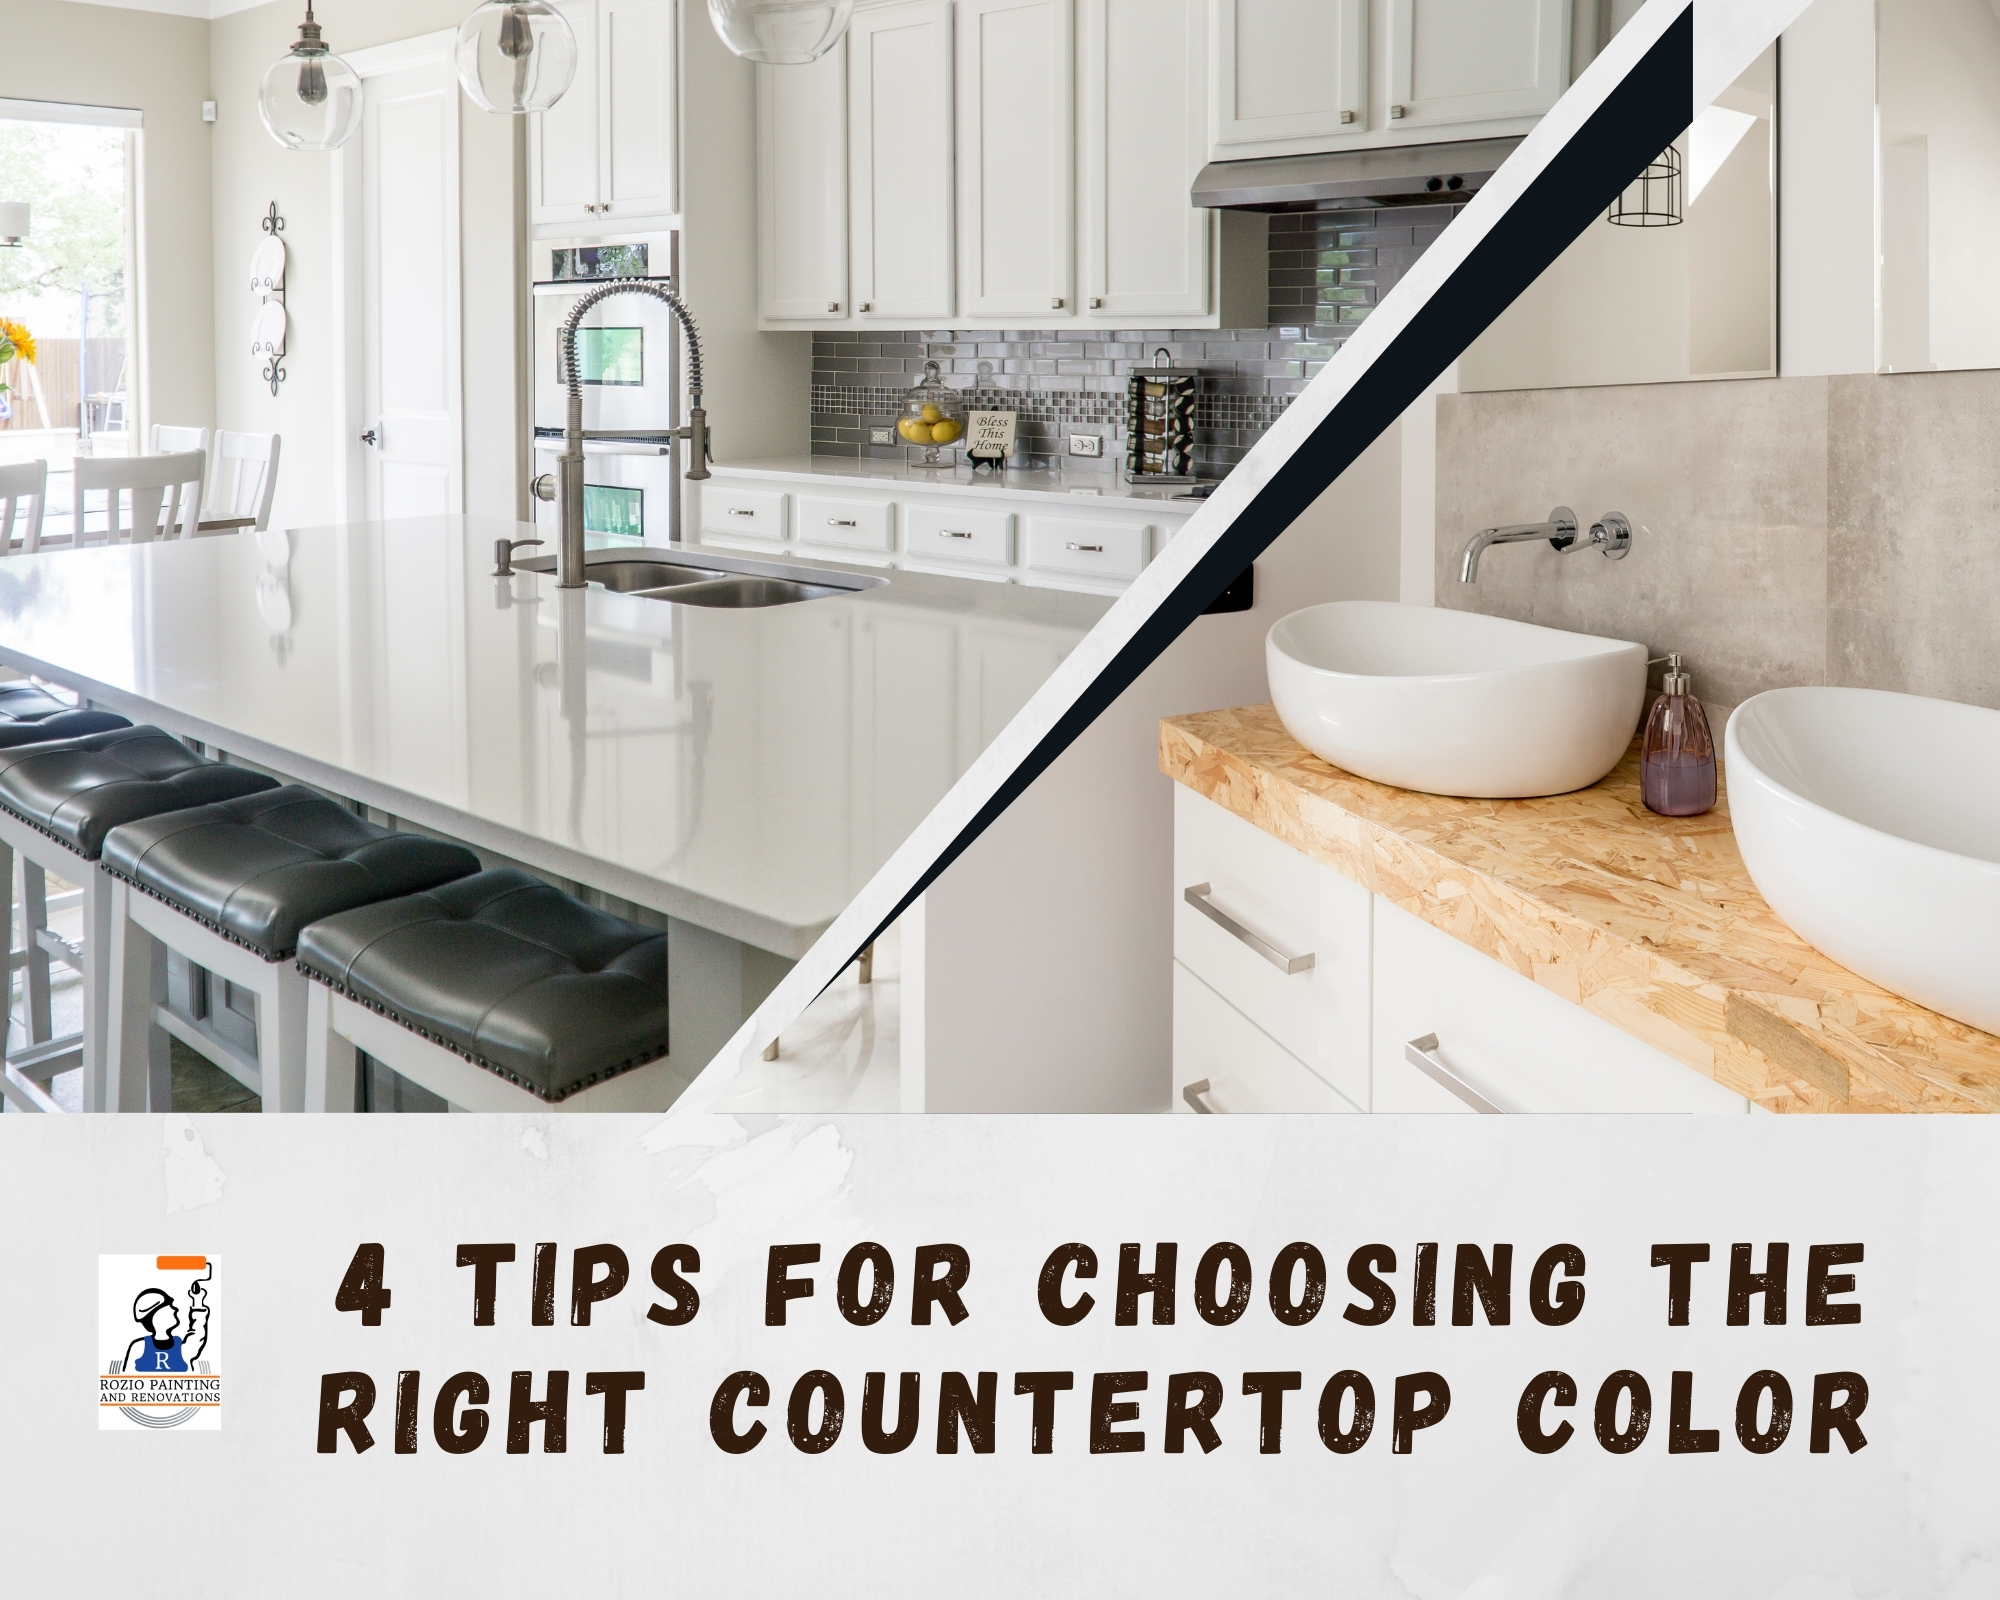 4 Tips for Choosing Countertop Color